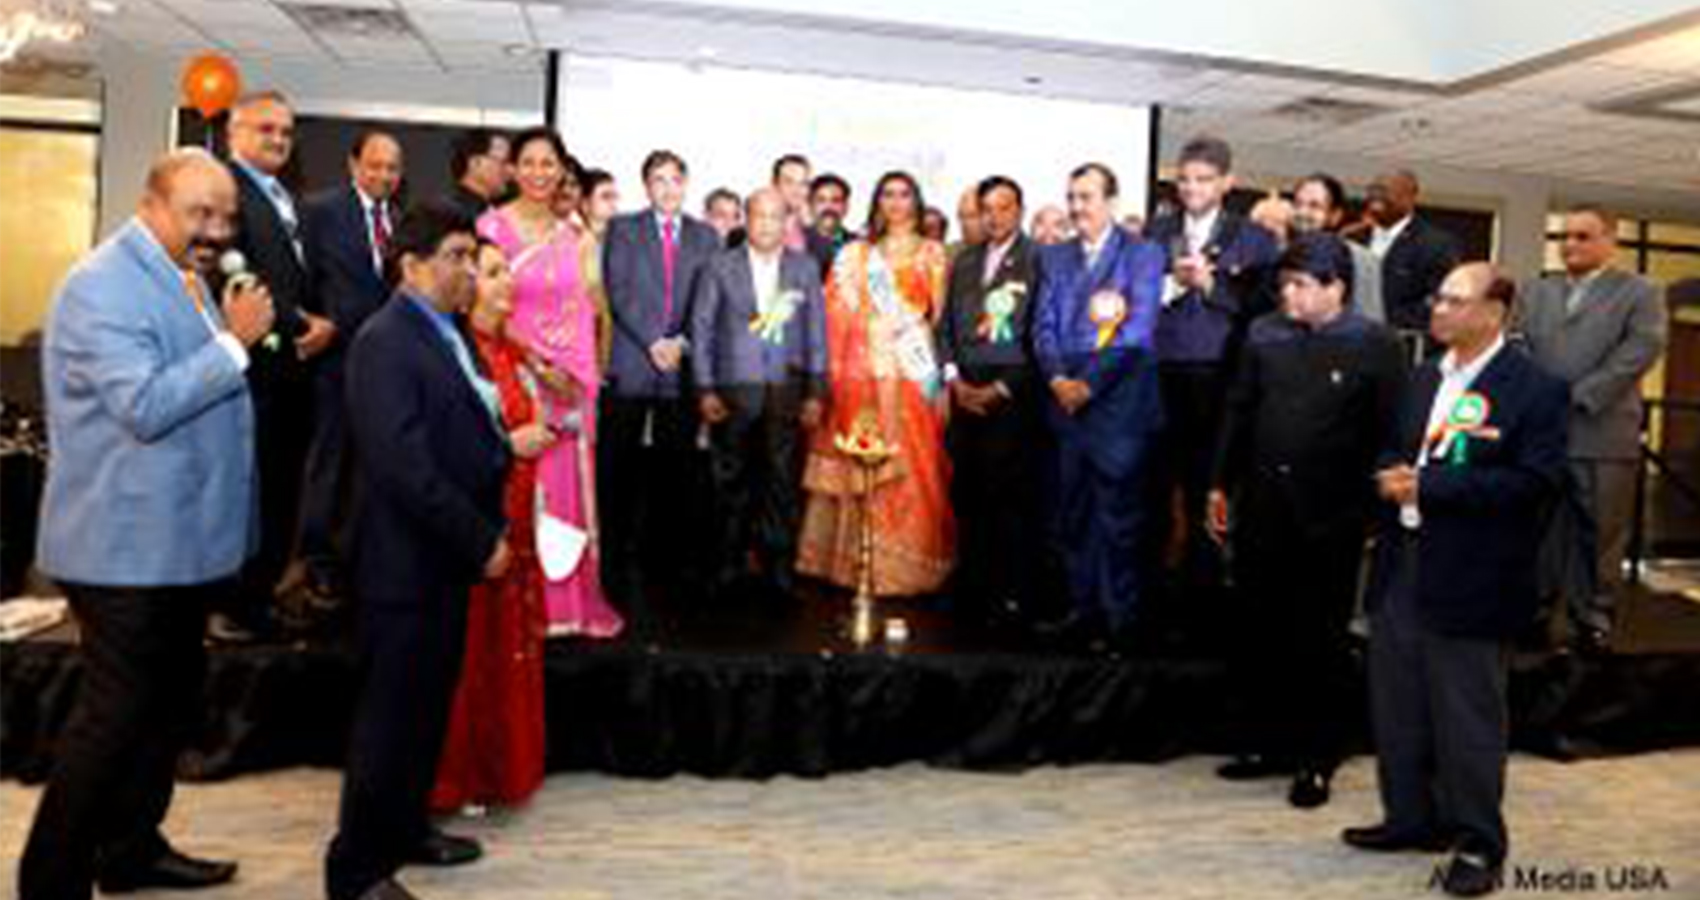 Grand India's Independence Day Gala Held In Chicago